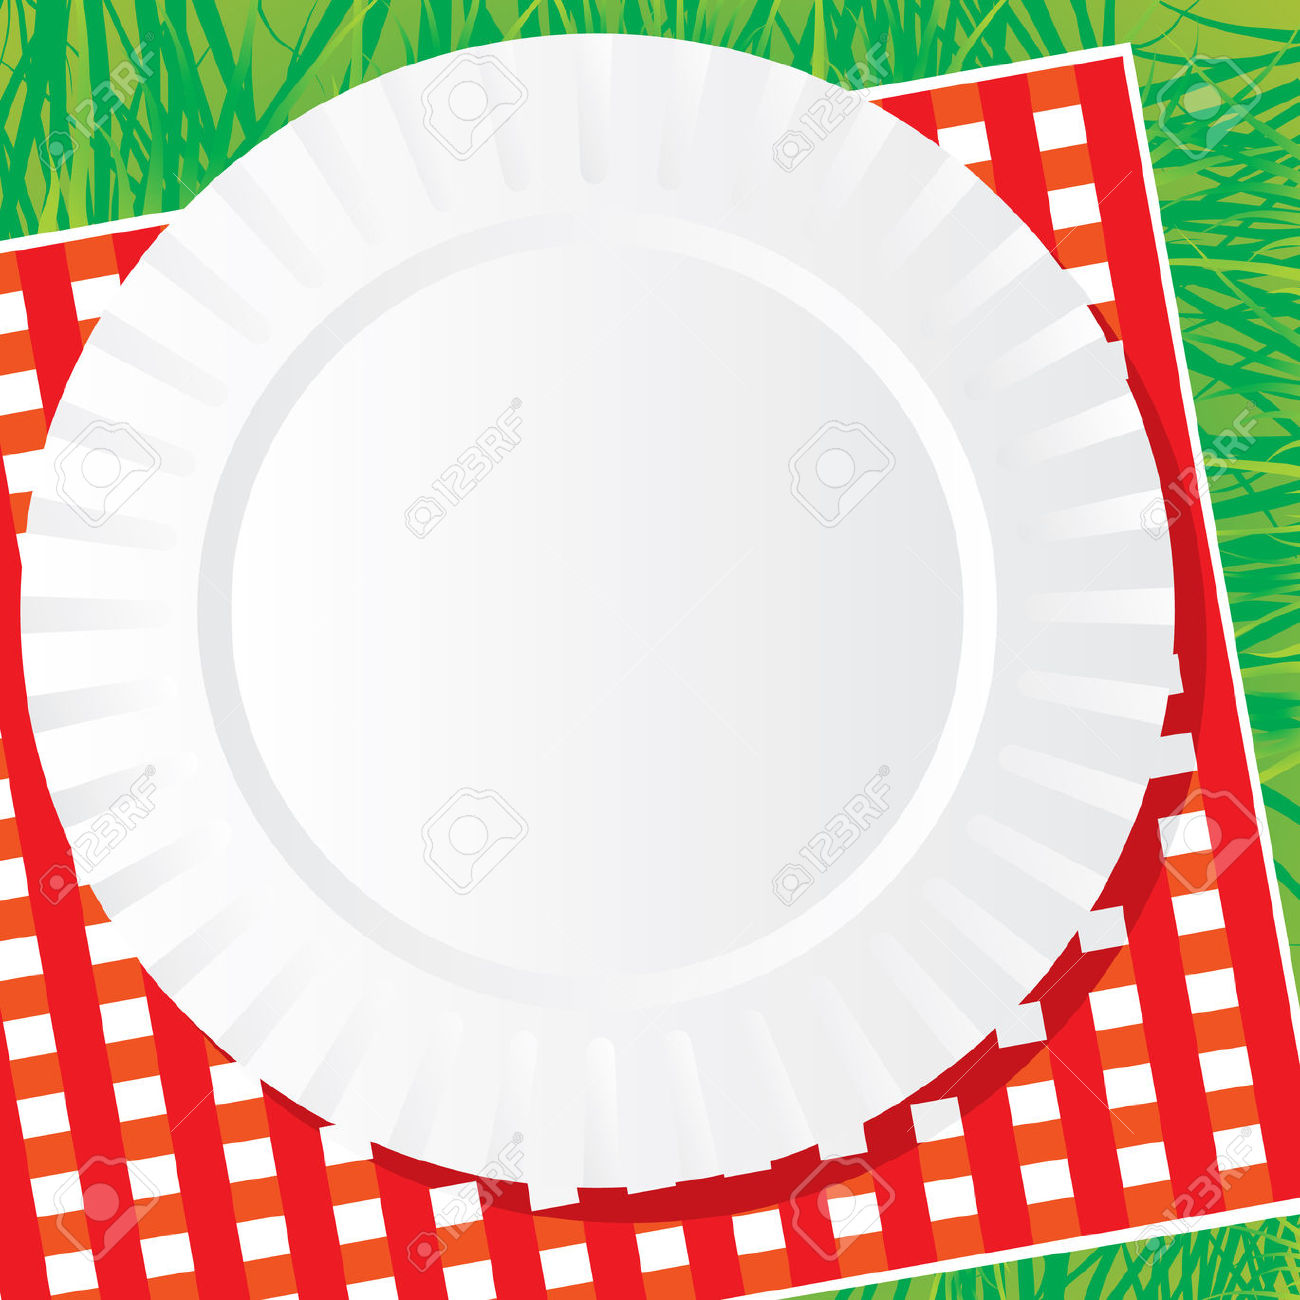 Download Backgrounds Clipart Picnic Clipart